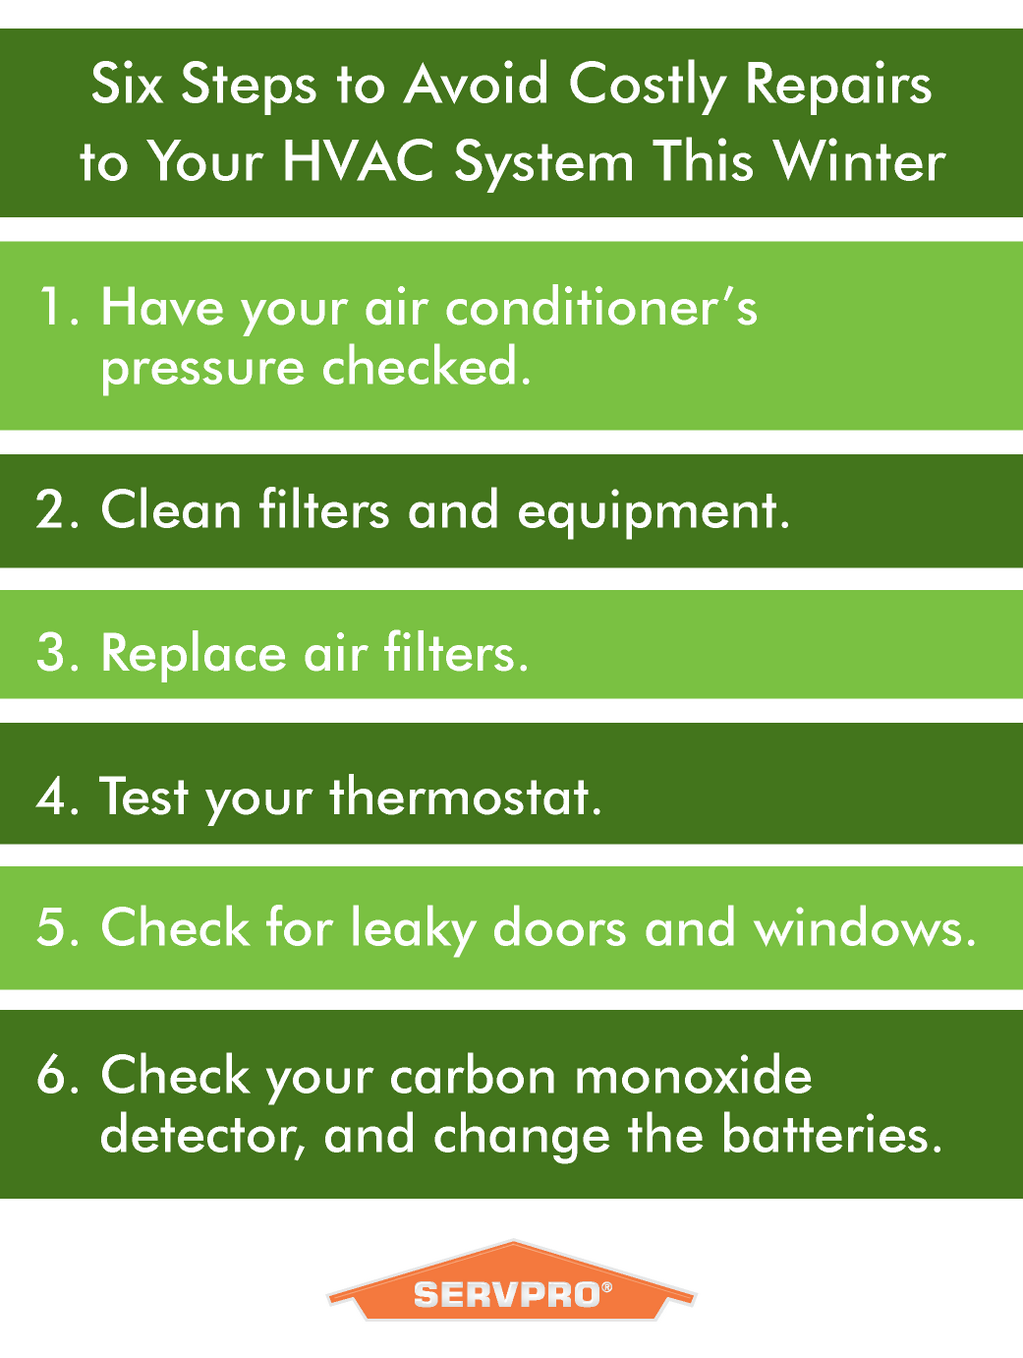 SERVPRO via SERVPRO9650 Colder weather is coming